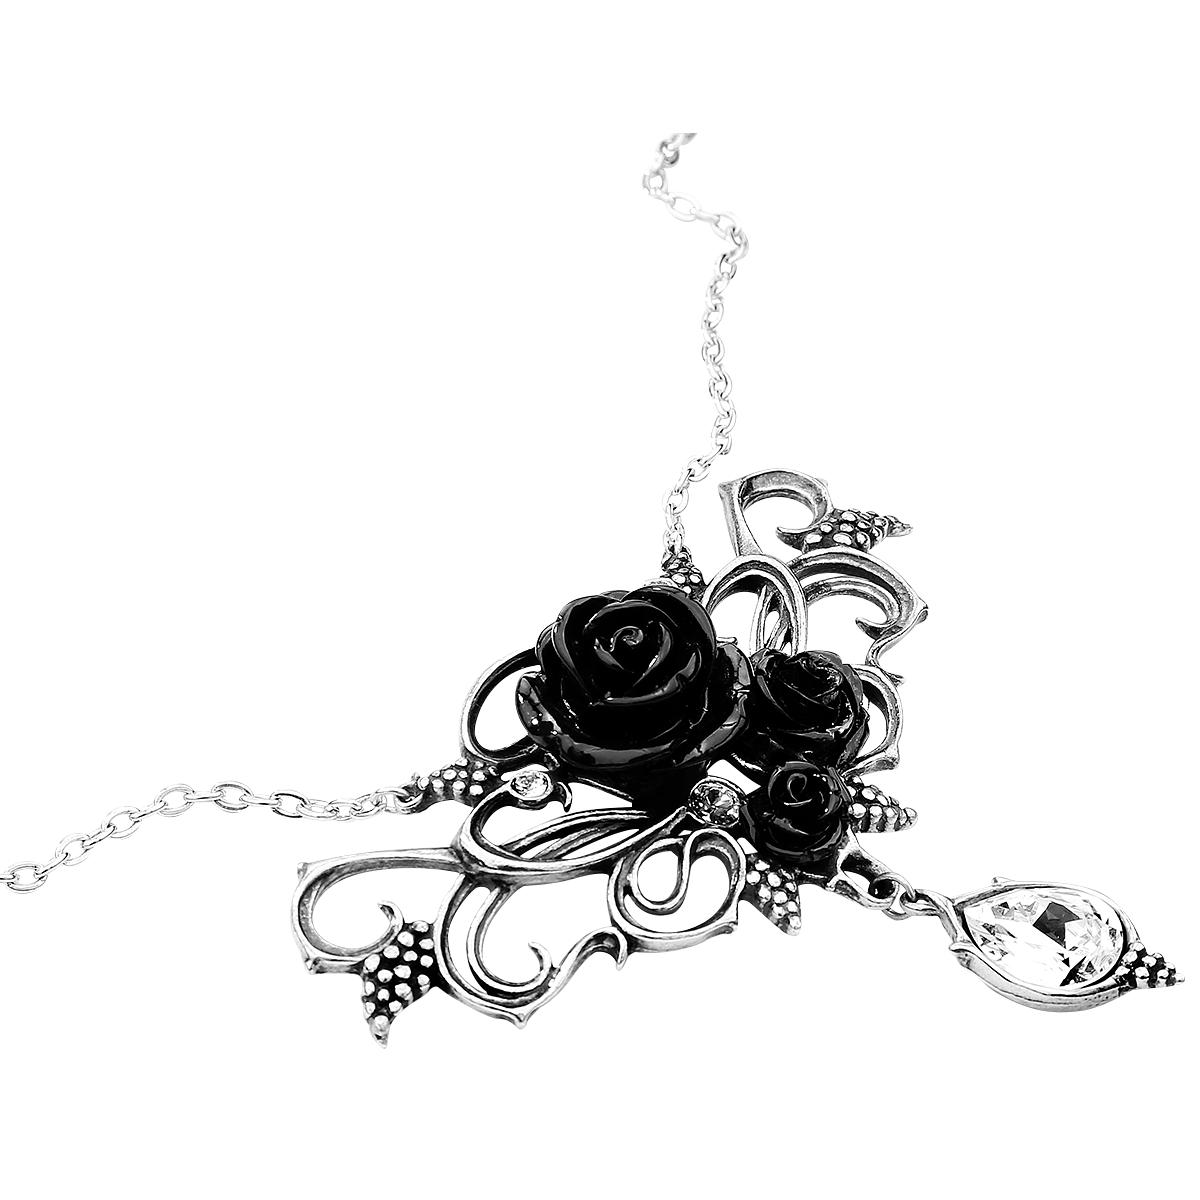 1200x1200 Bacchanal Rose Rose Vines, Alchemy And Gothic